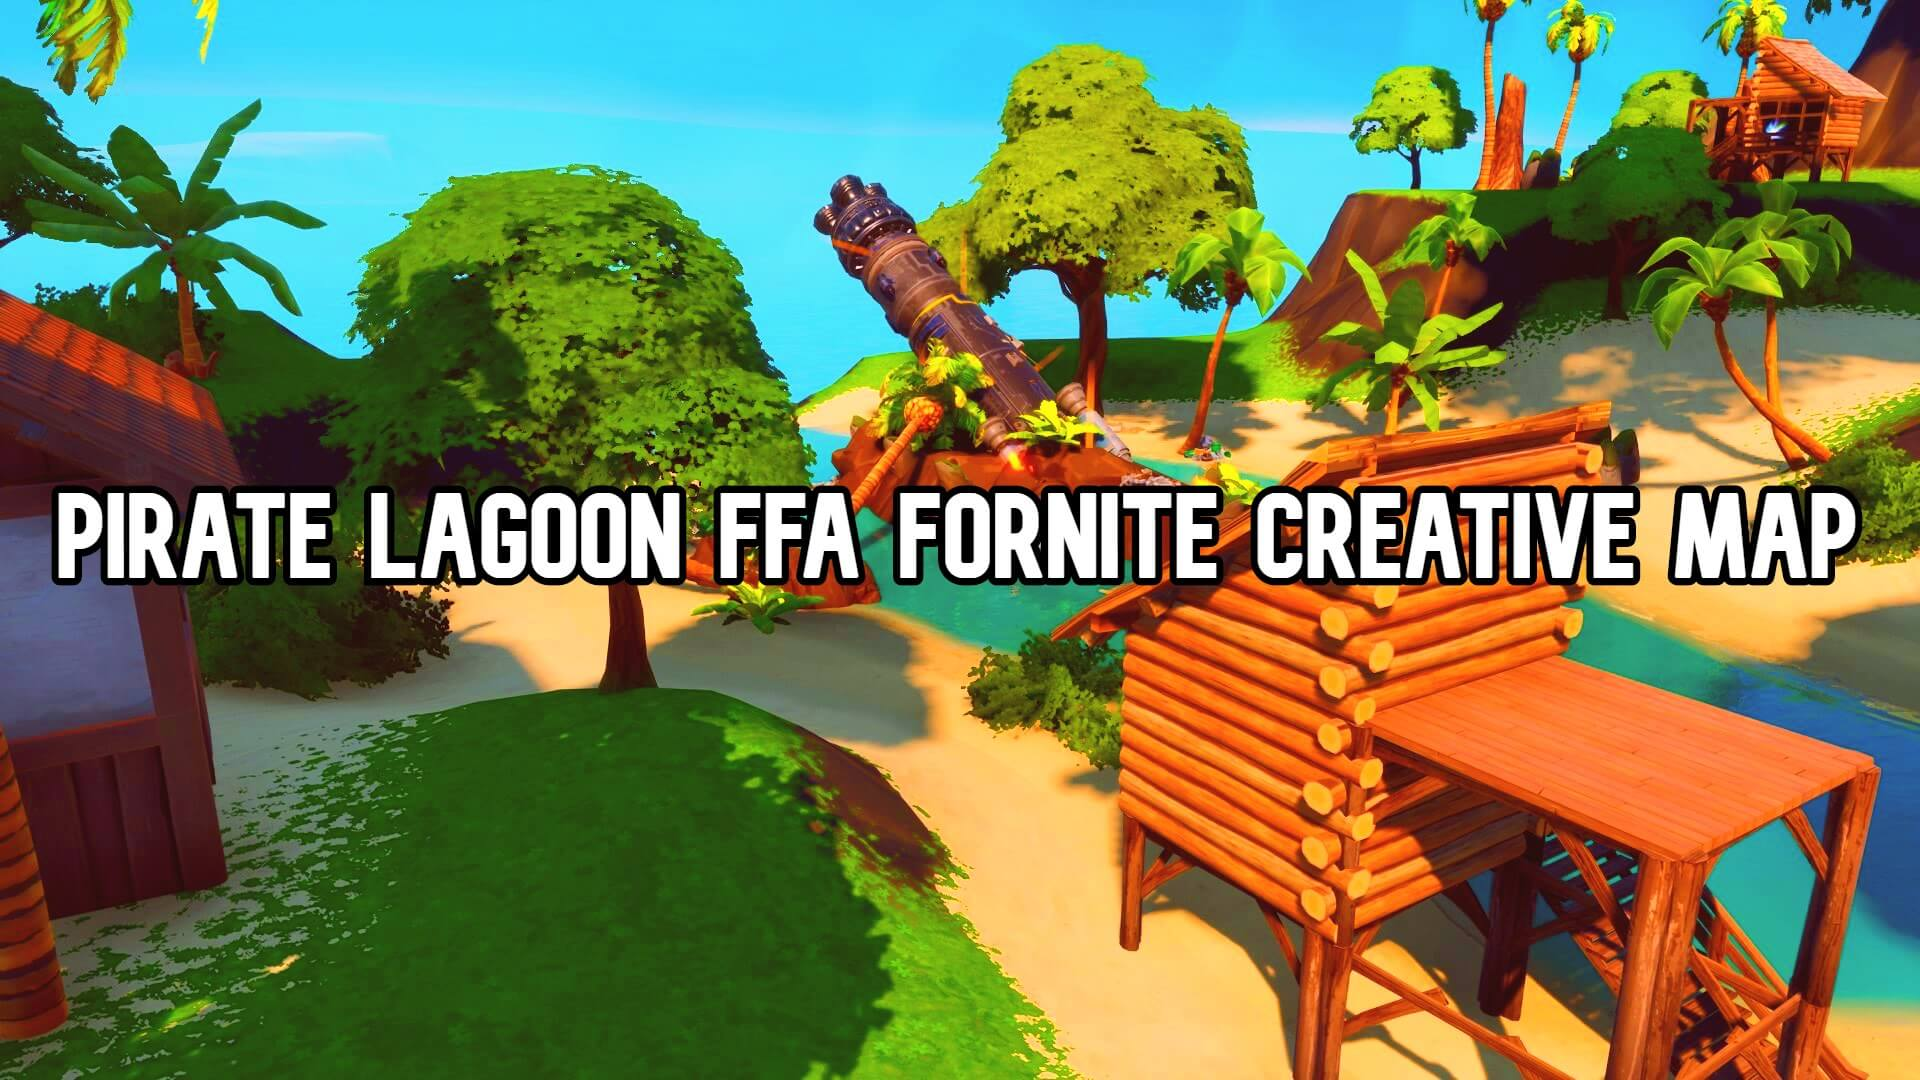 PIRATE LAGOON FFA MINI GAME!